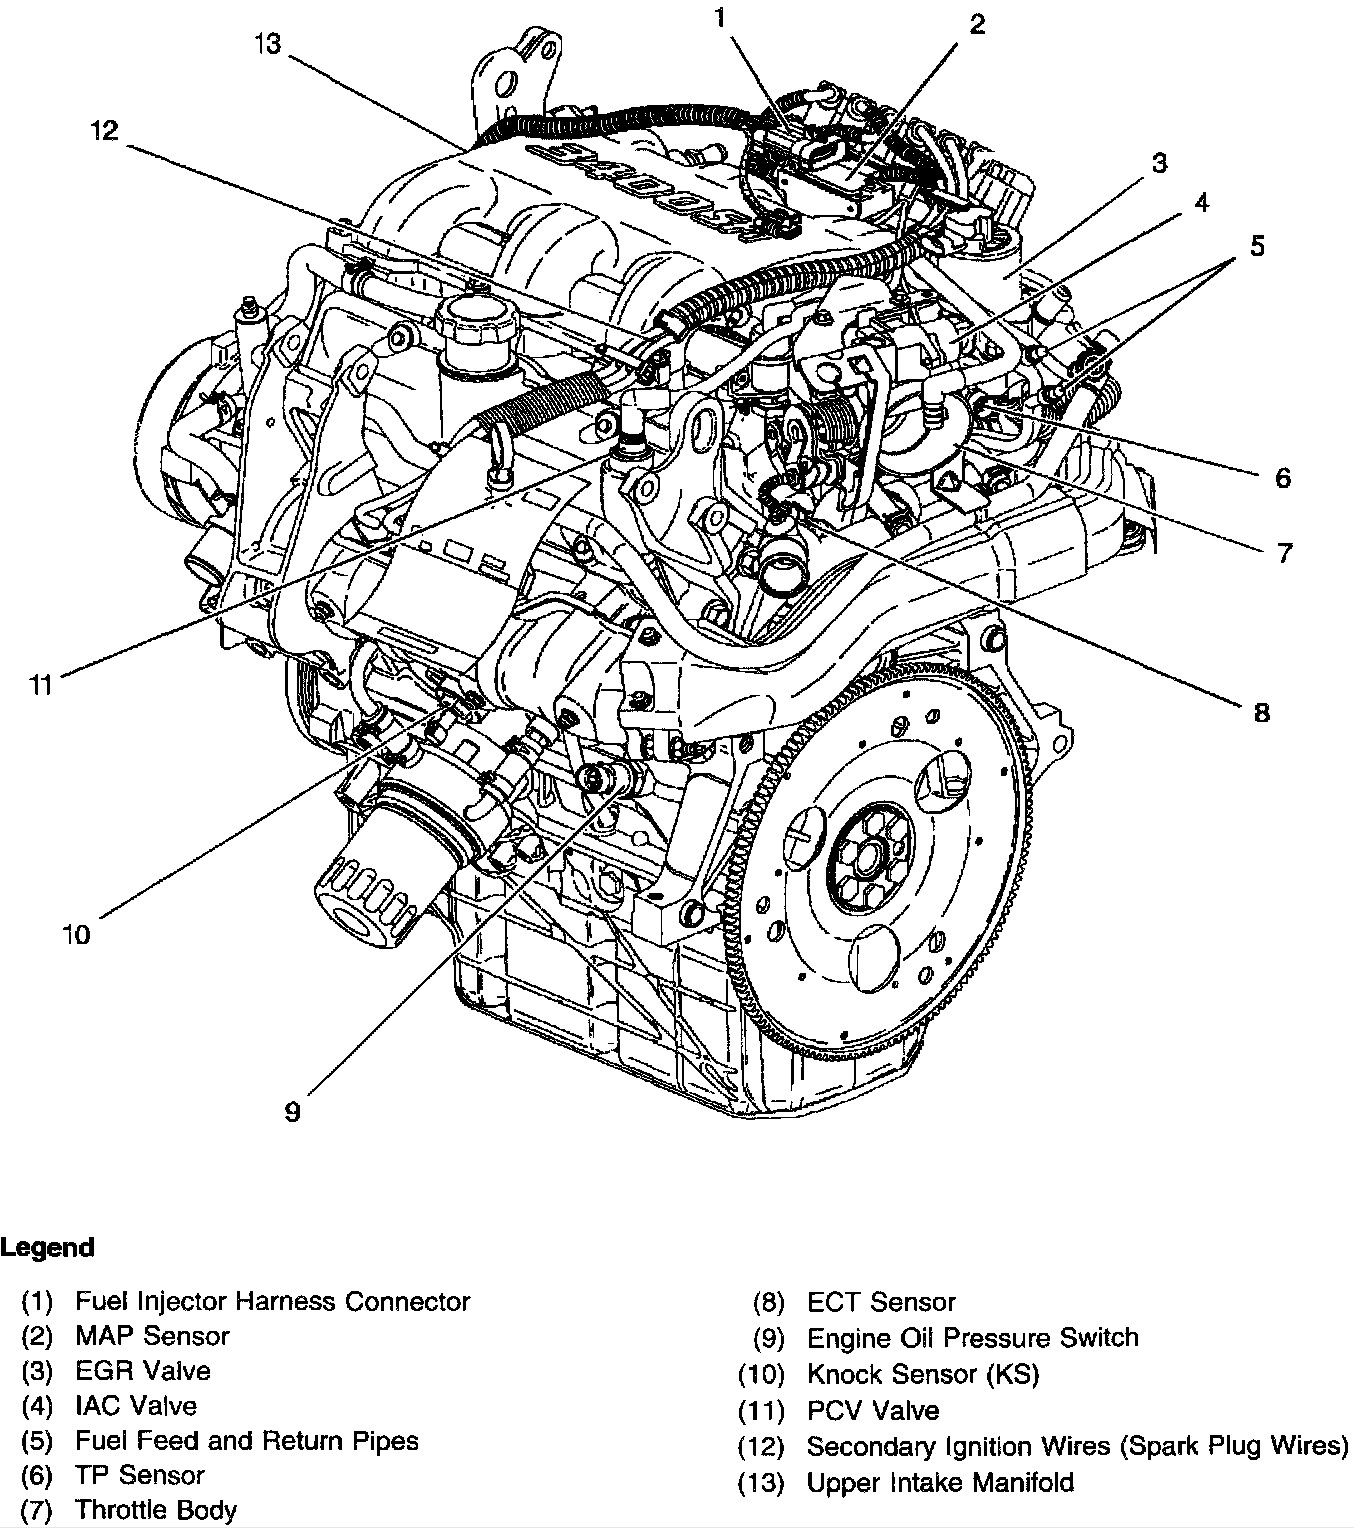 Diagram Pontiac 3 1 V6 Engine Diagram Full Version Hd Quality Engine Diagram Diagramvagina Argiso It